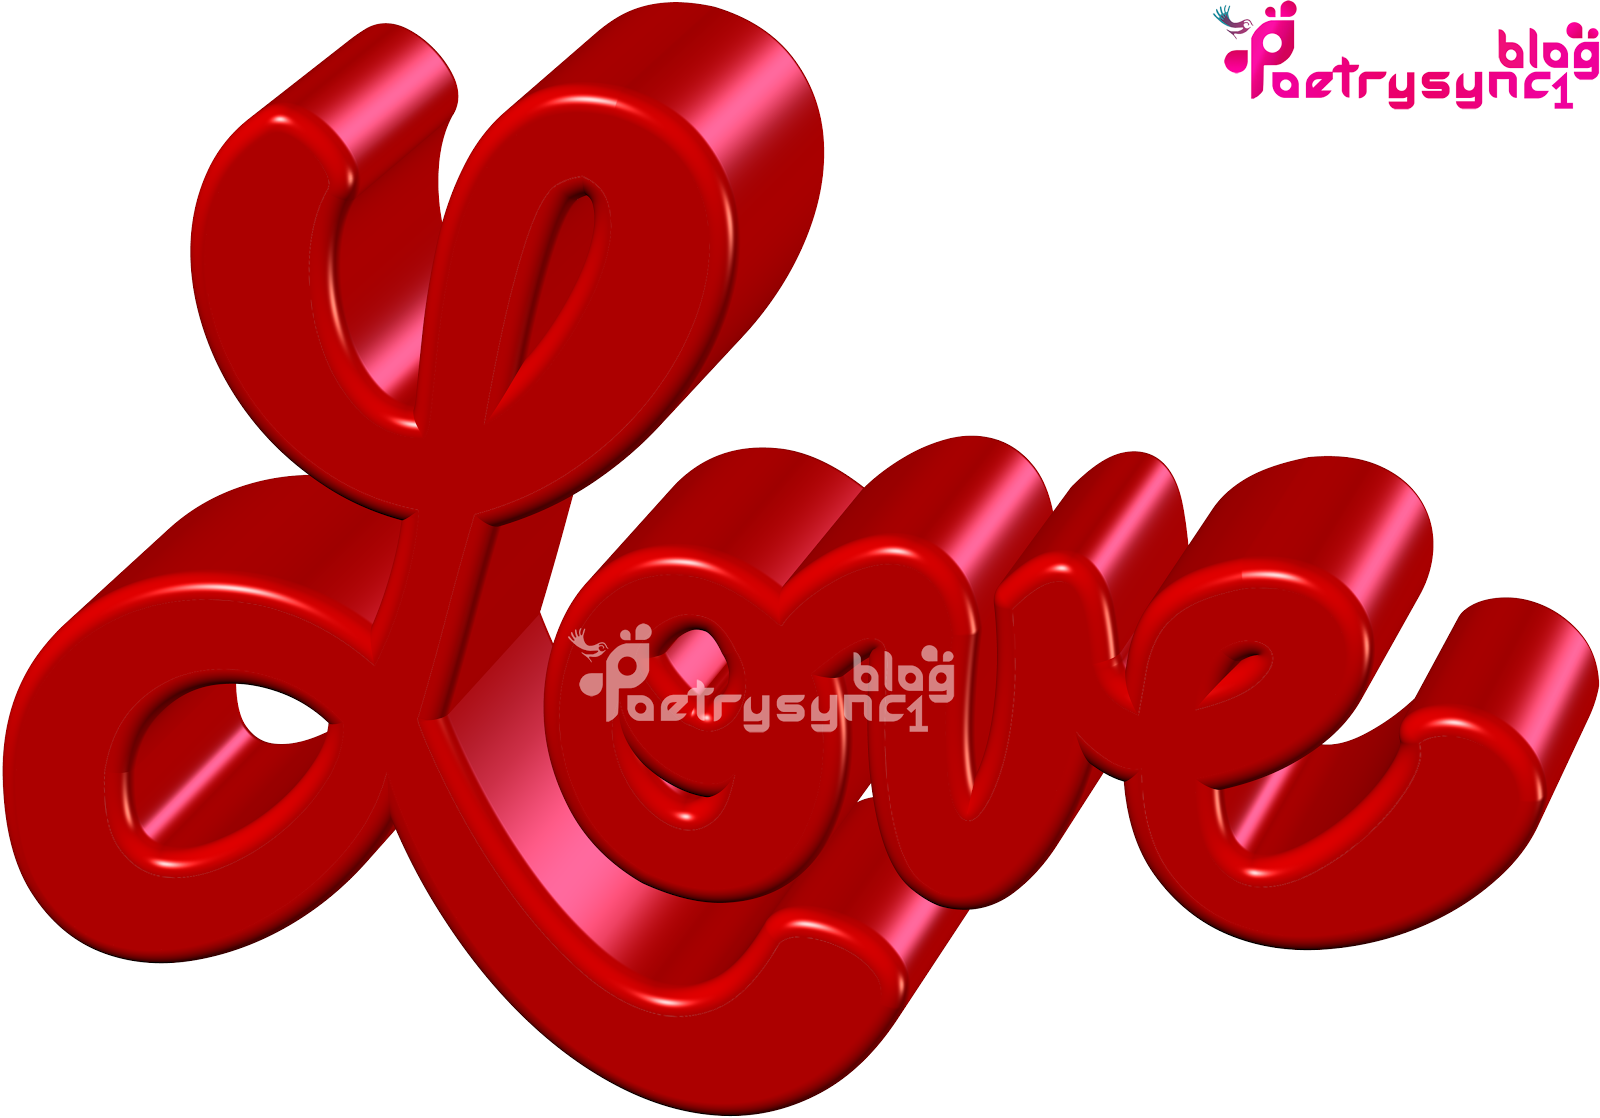 Love-3D-Image-Text-By-Poetrysync1.blog